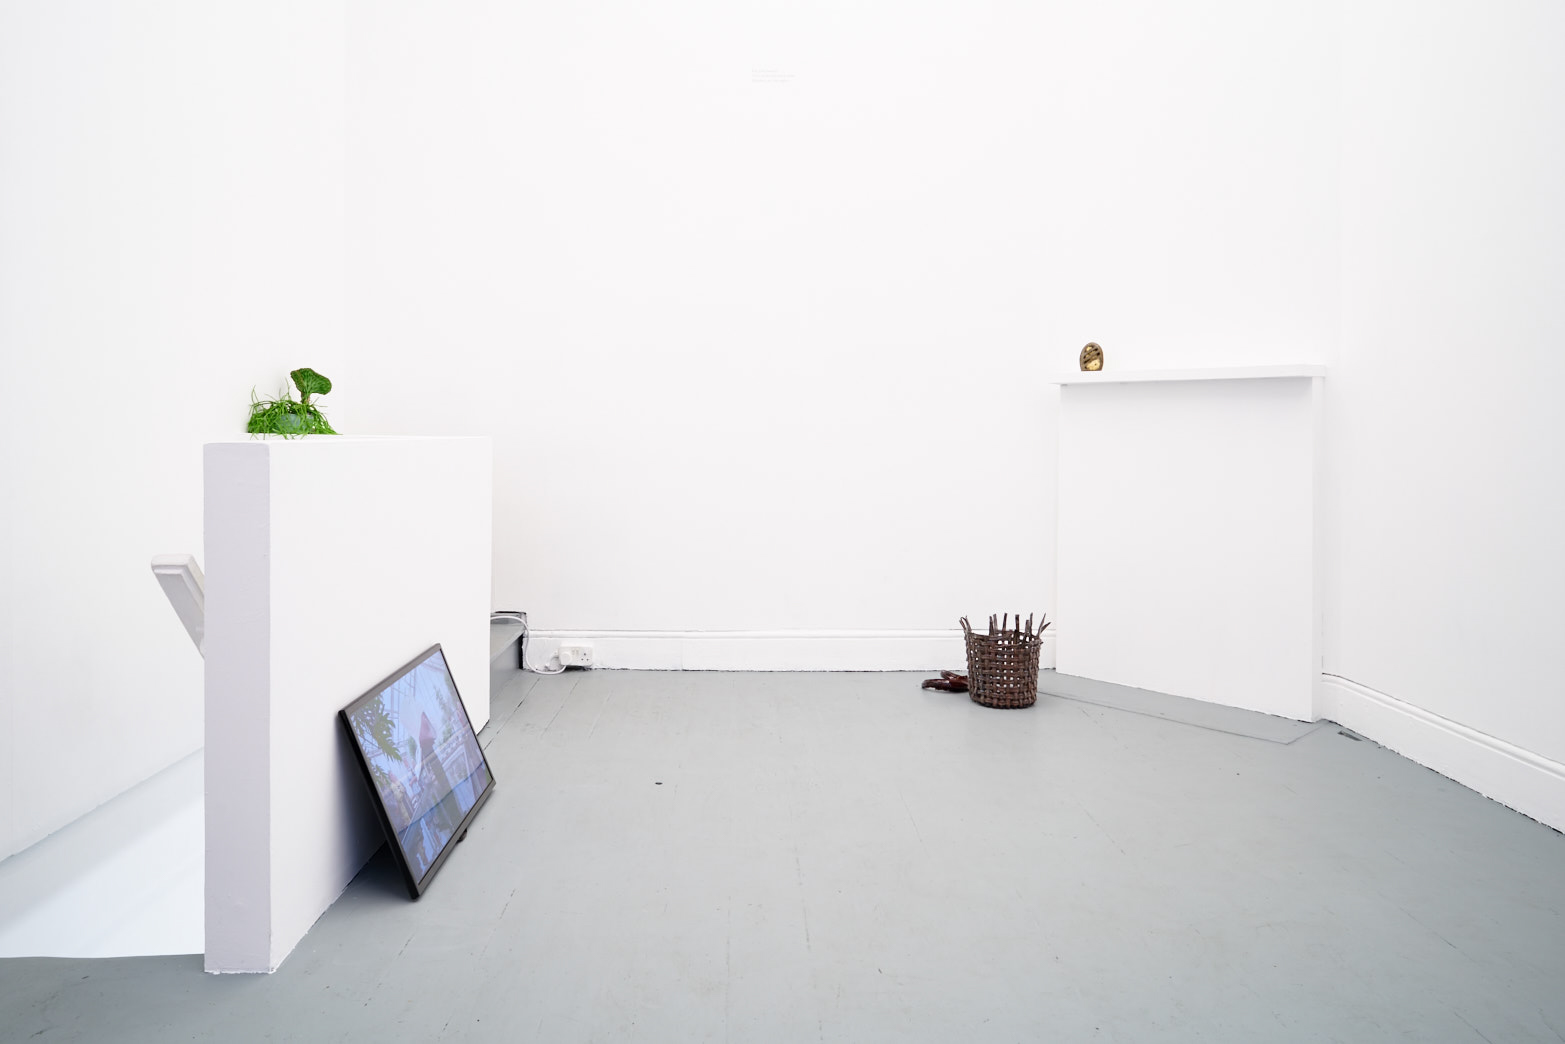 Installation view of exhibition, Becoming Plant, Tenderpixel, London.